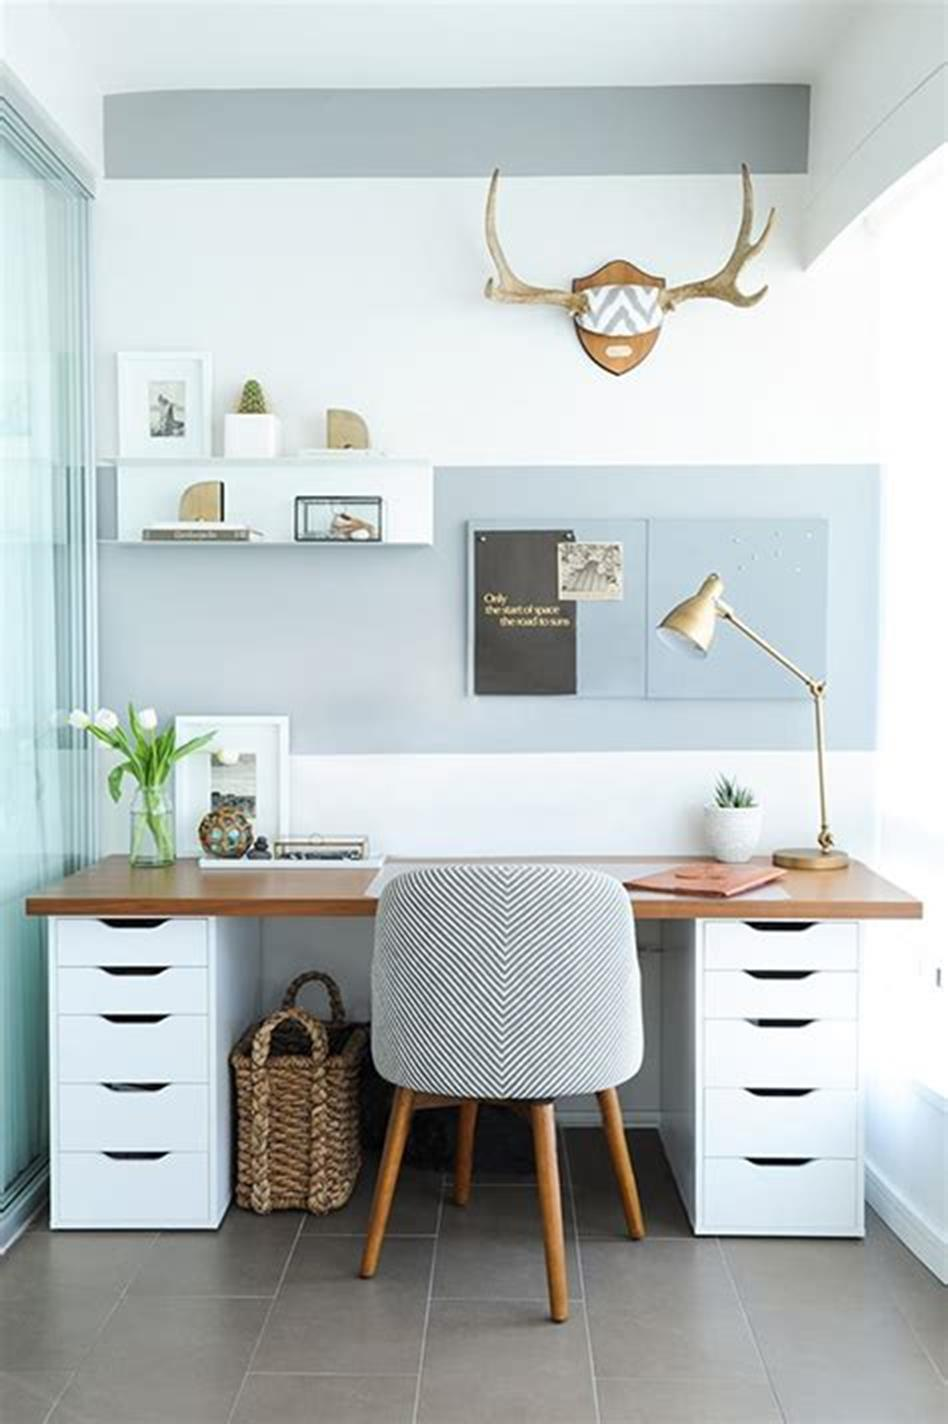 50 Best Small Space Office Decorating Ideas On a Budget 2019 28